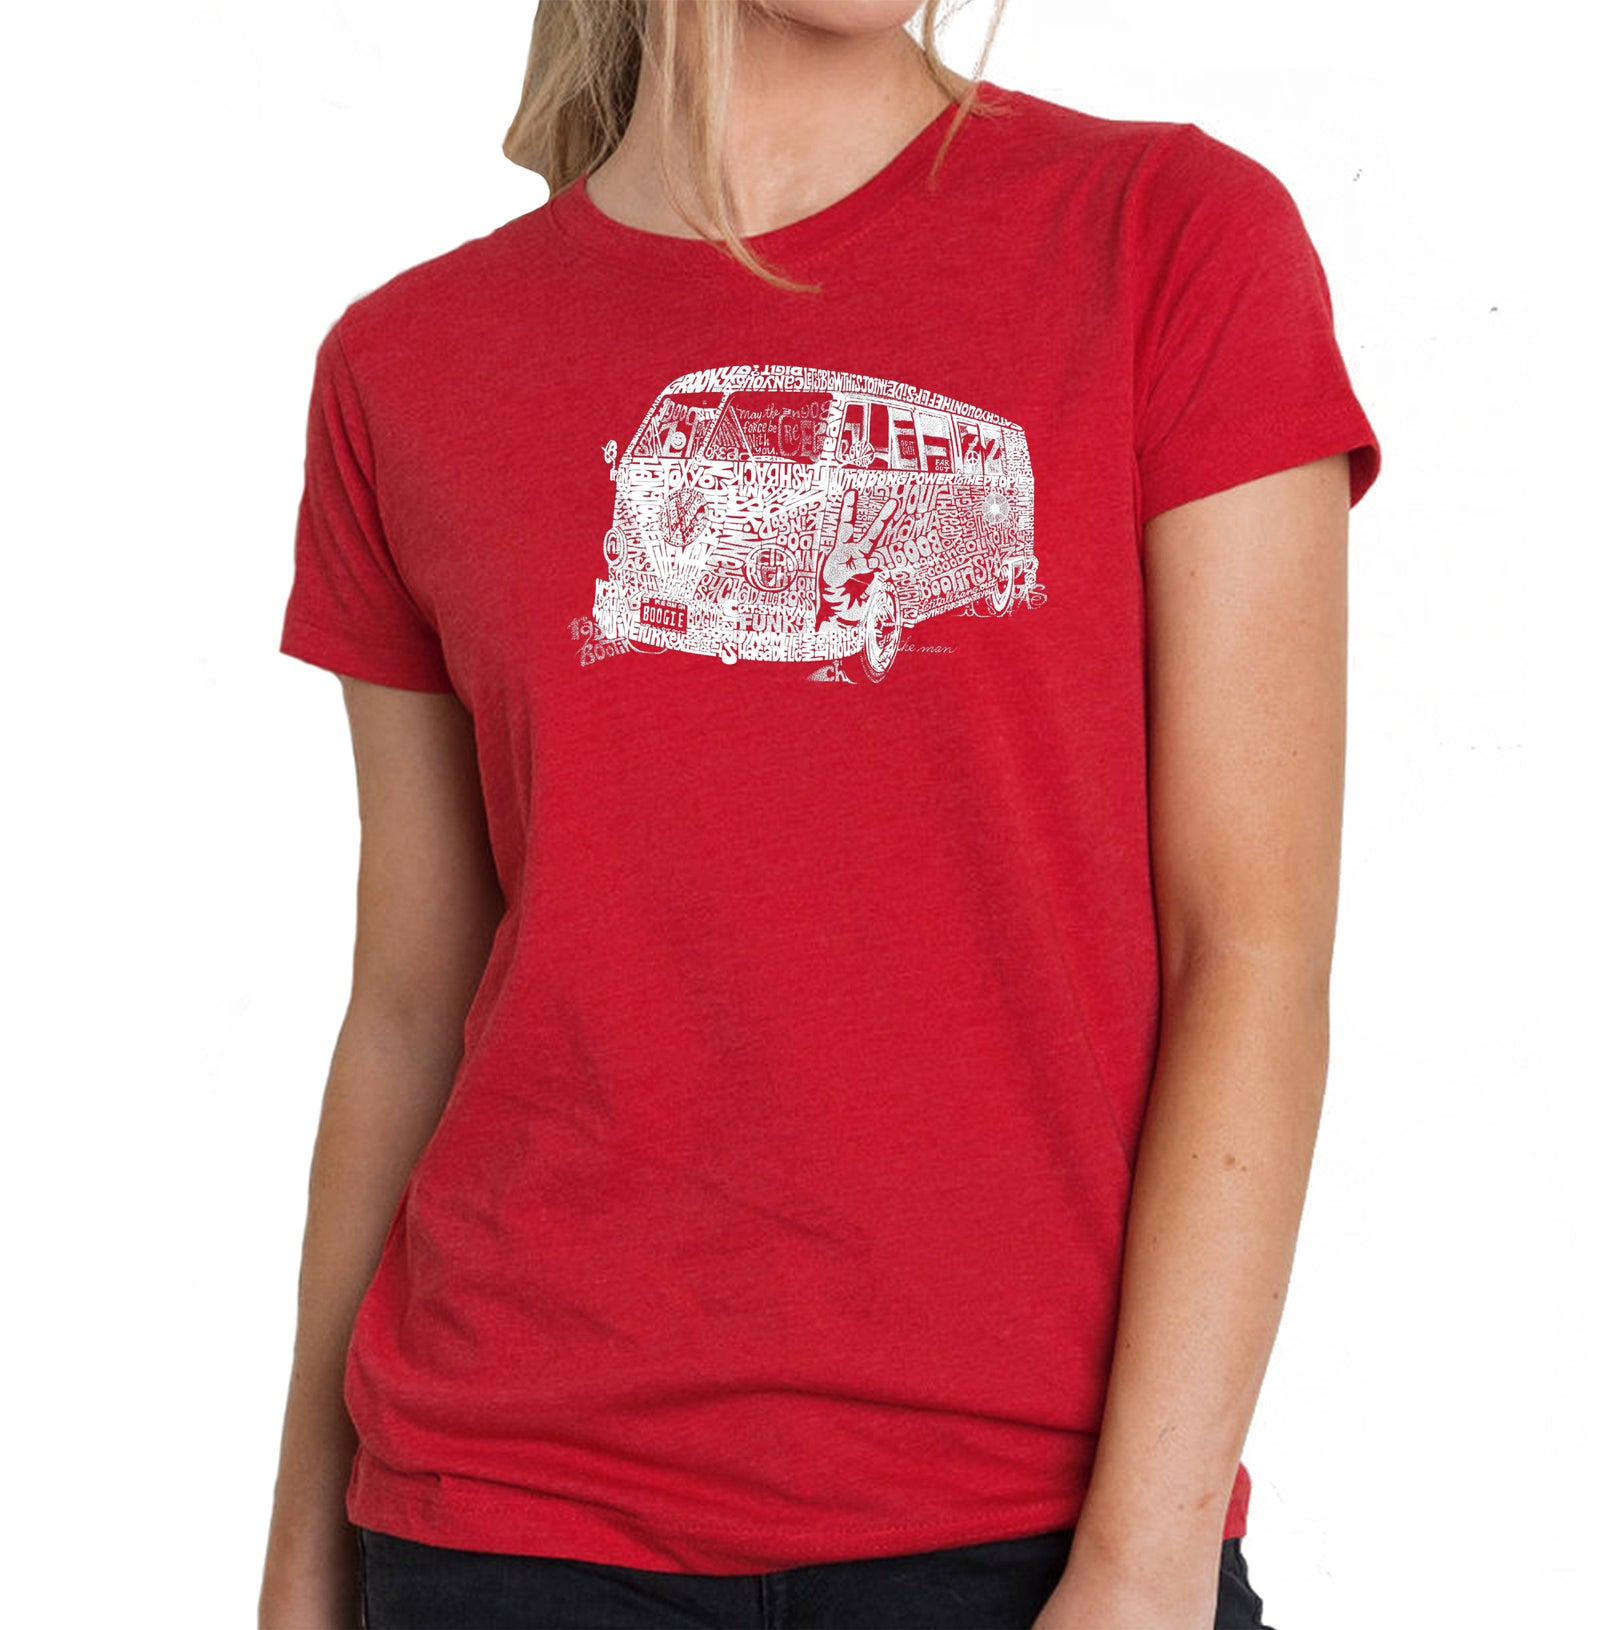 Women's Premium Blend Word Art T-shirt - THE 70'S